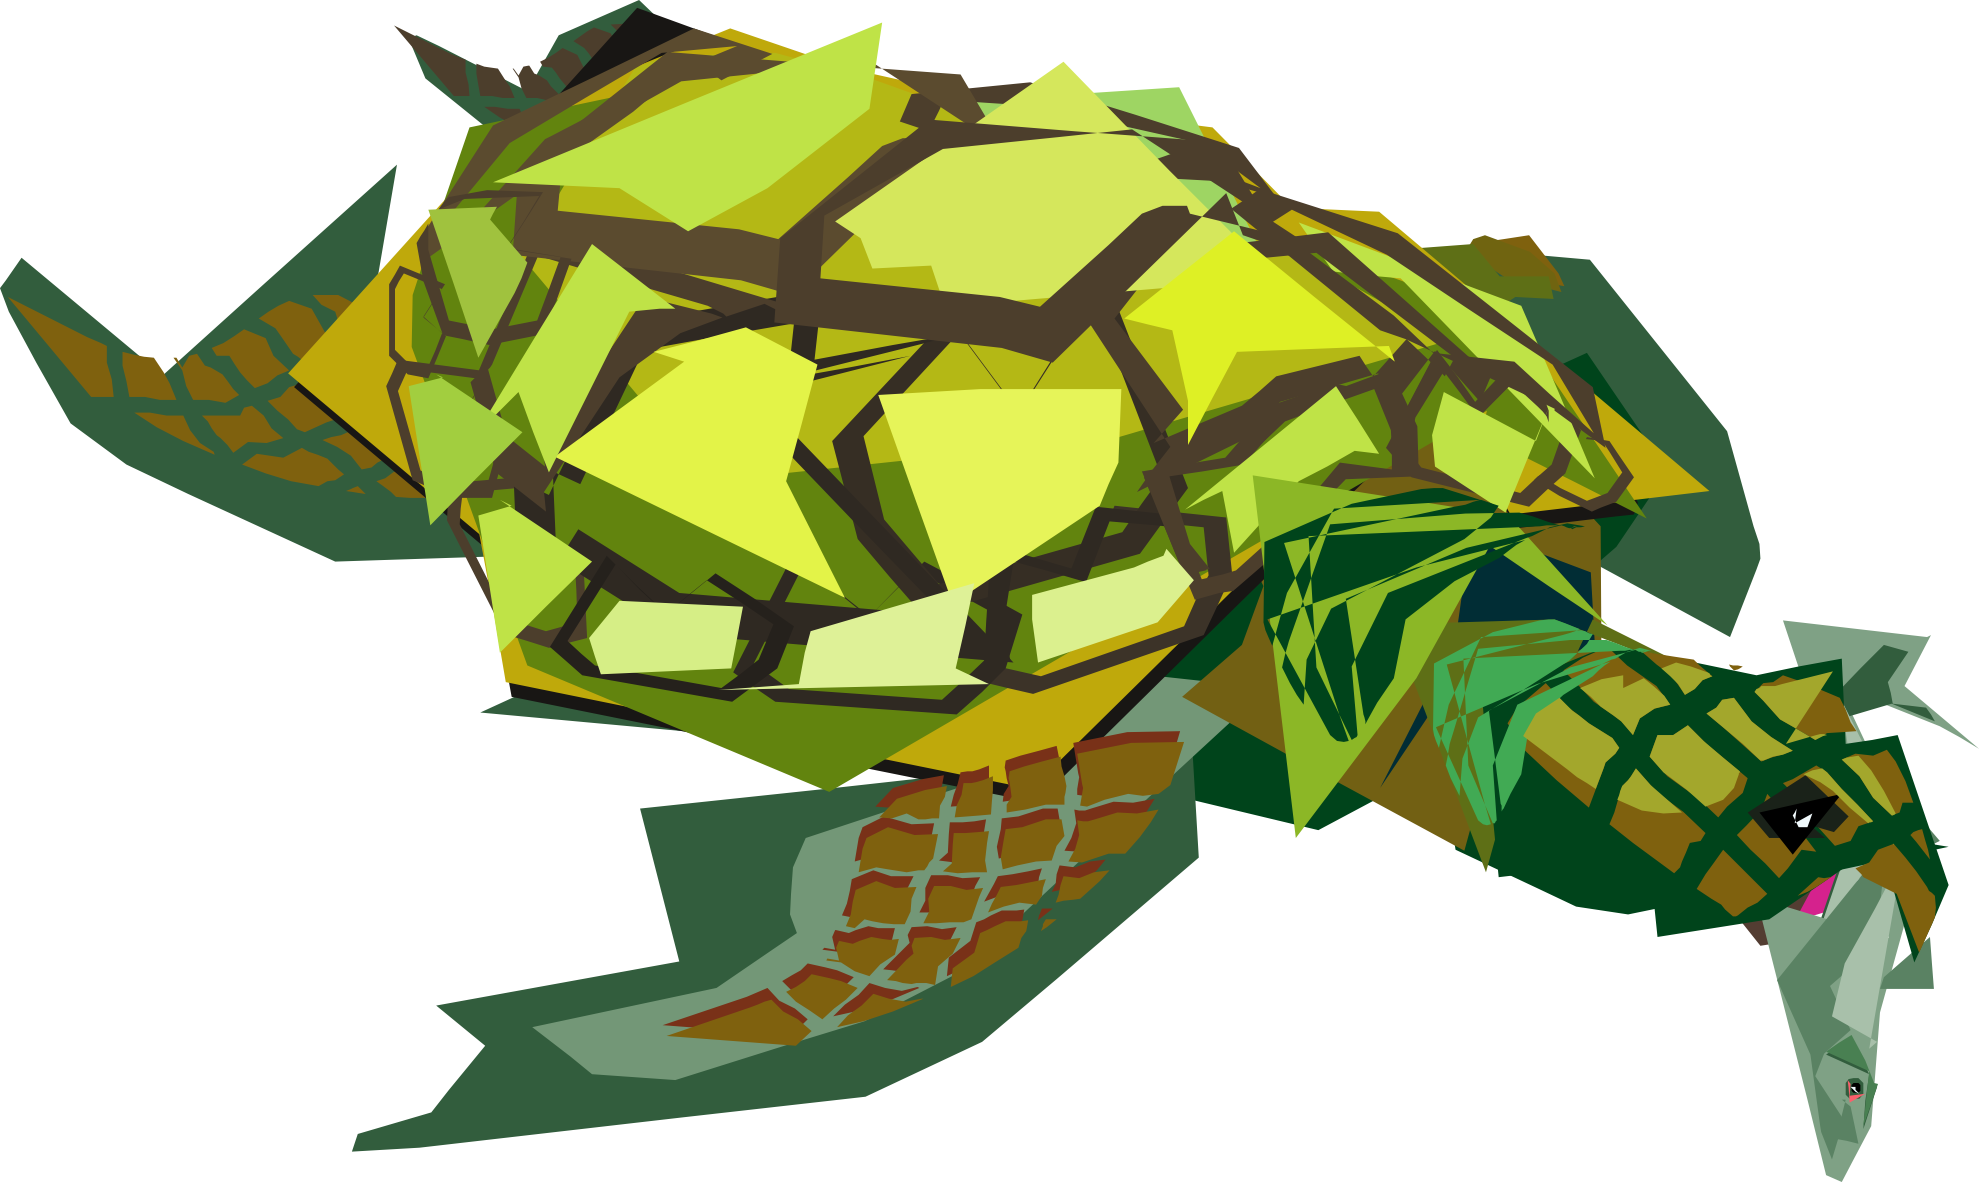 Clipart turtle transparent background. Free pictures icons and